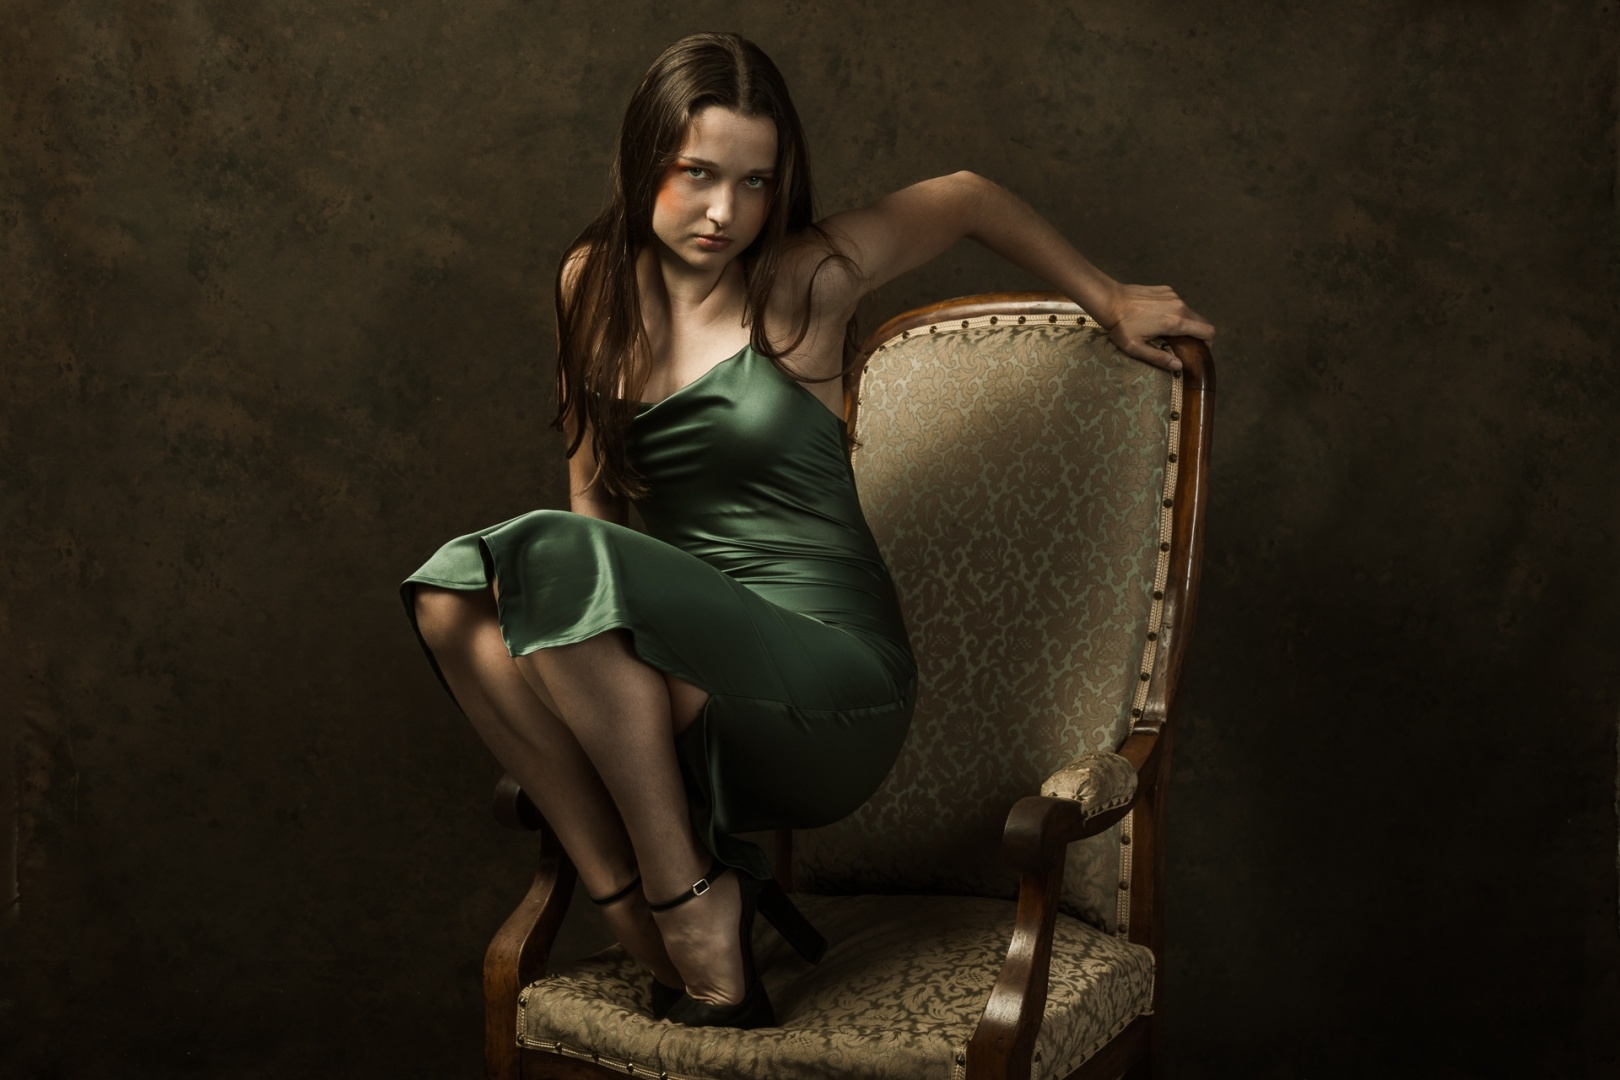 Retratos/don't you sit on your grandma's chair like that!